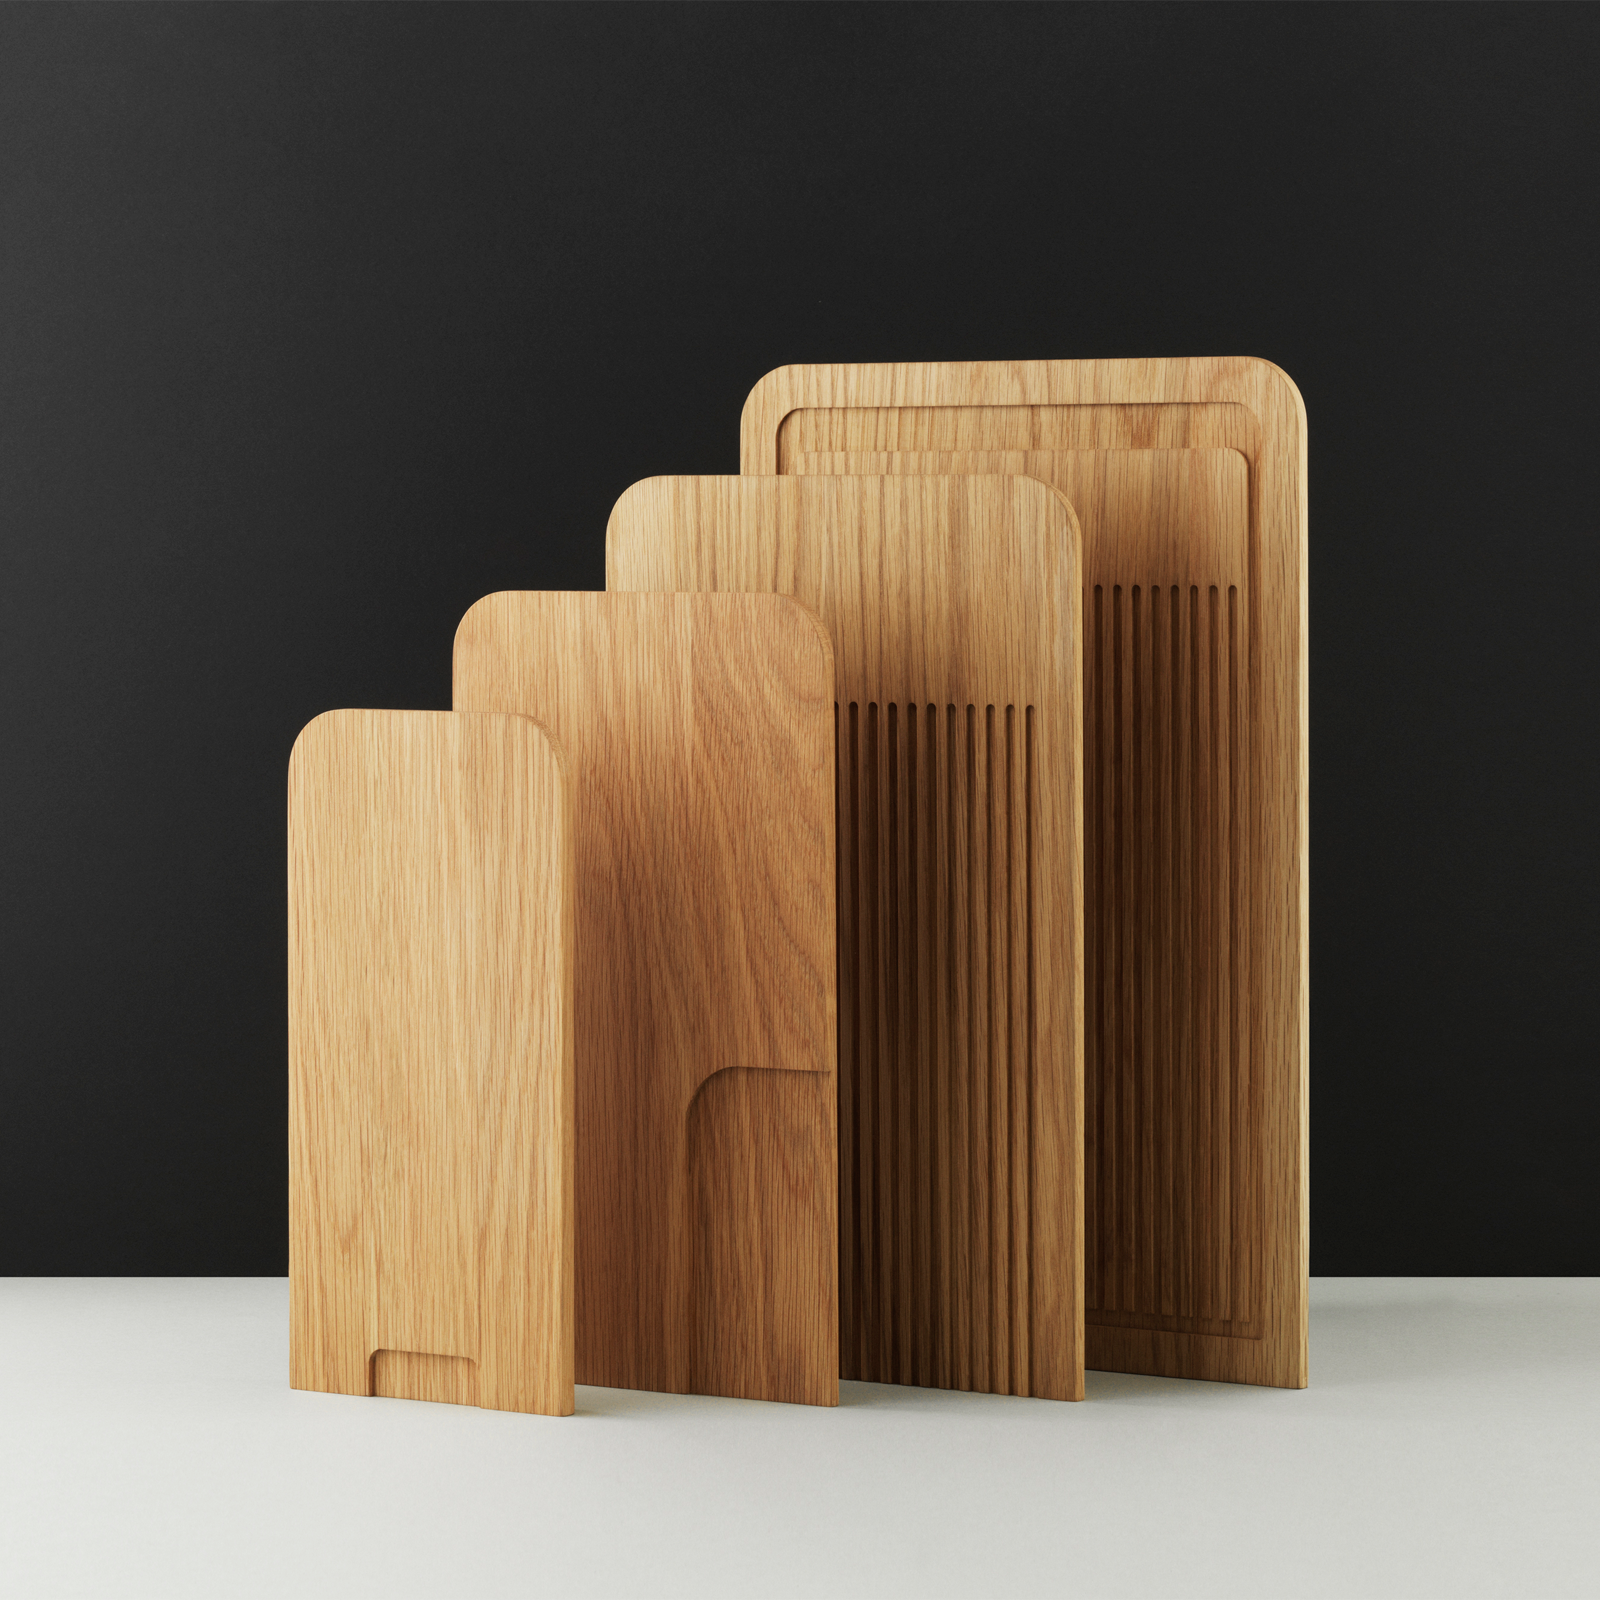 Normann Copenhagen Part Cutting Board Veggie 35x20cm 部落系列 橡木 蔬食砧板